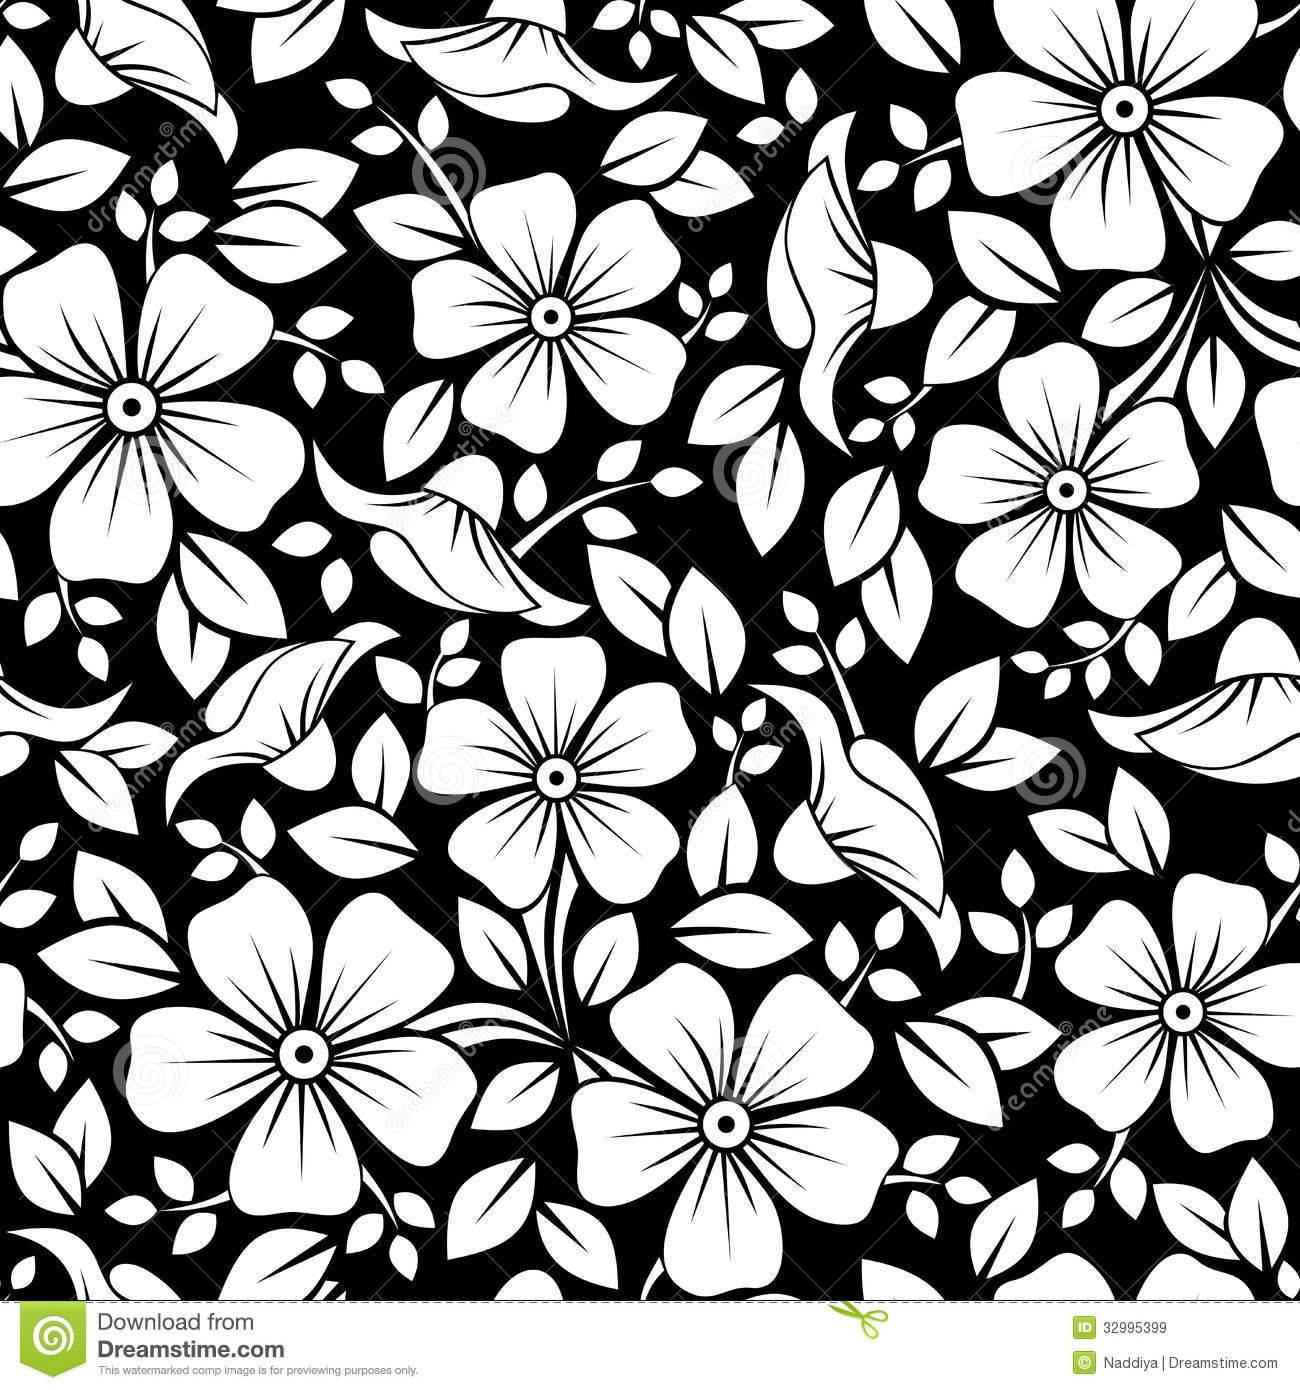 Seamless pattern with flowers and leaves illustration 32995399 seamless pattern with flowers and leaves illustration 32995399 megapixl mightylinksfo